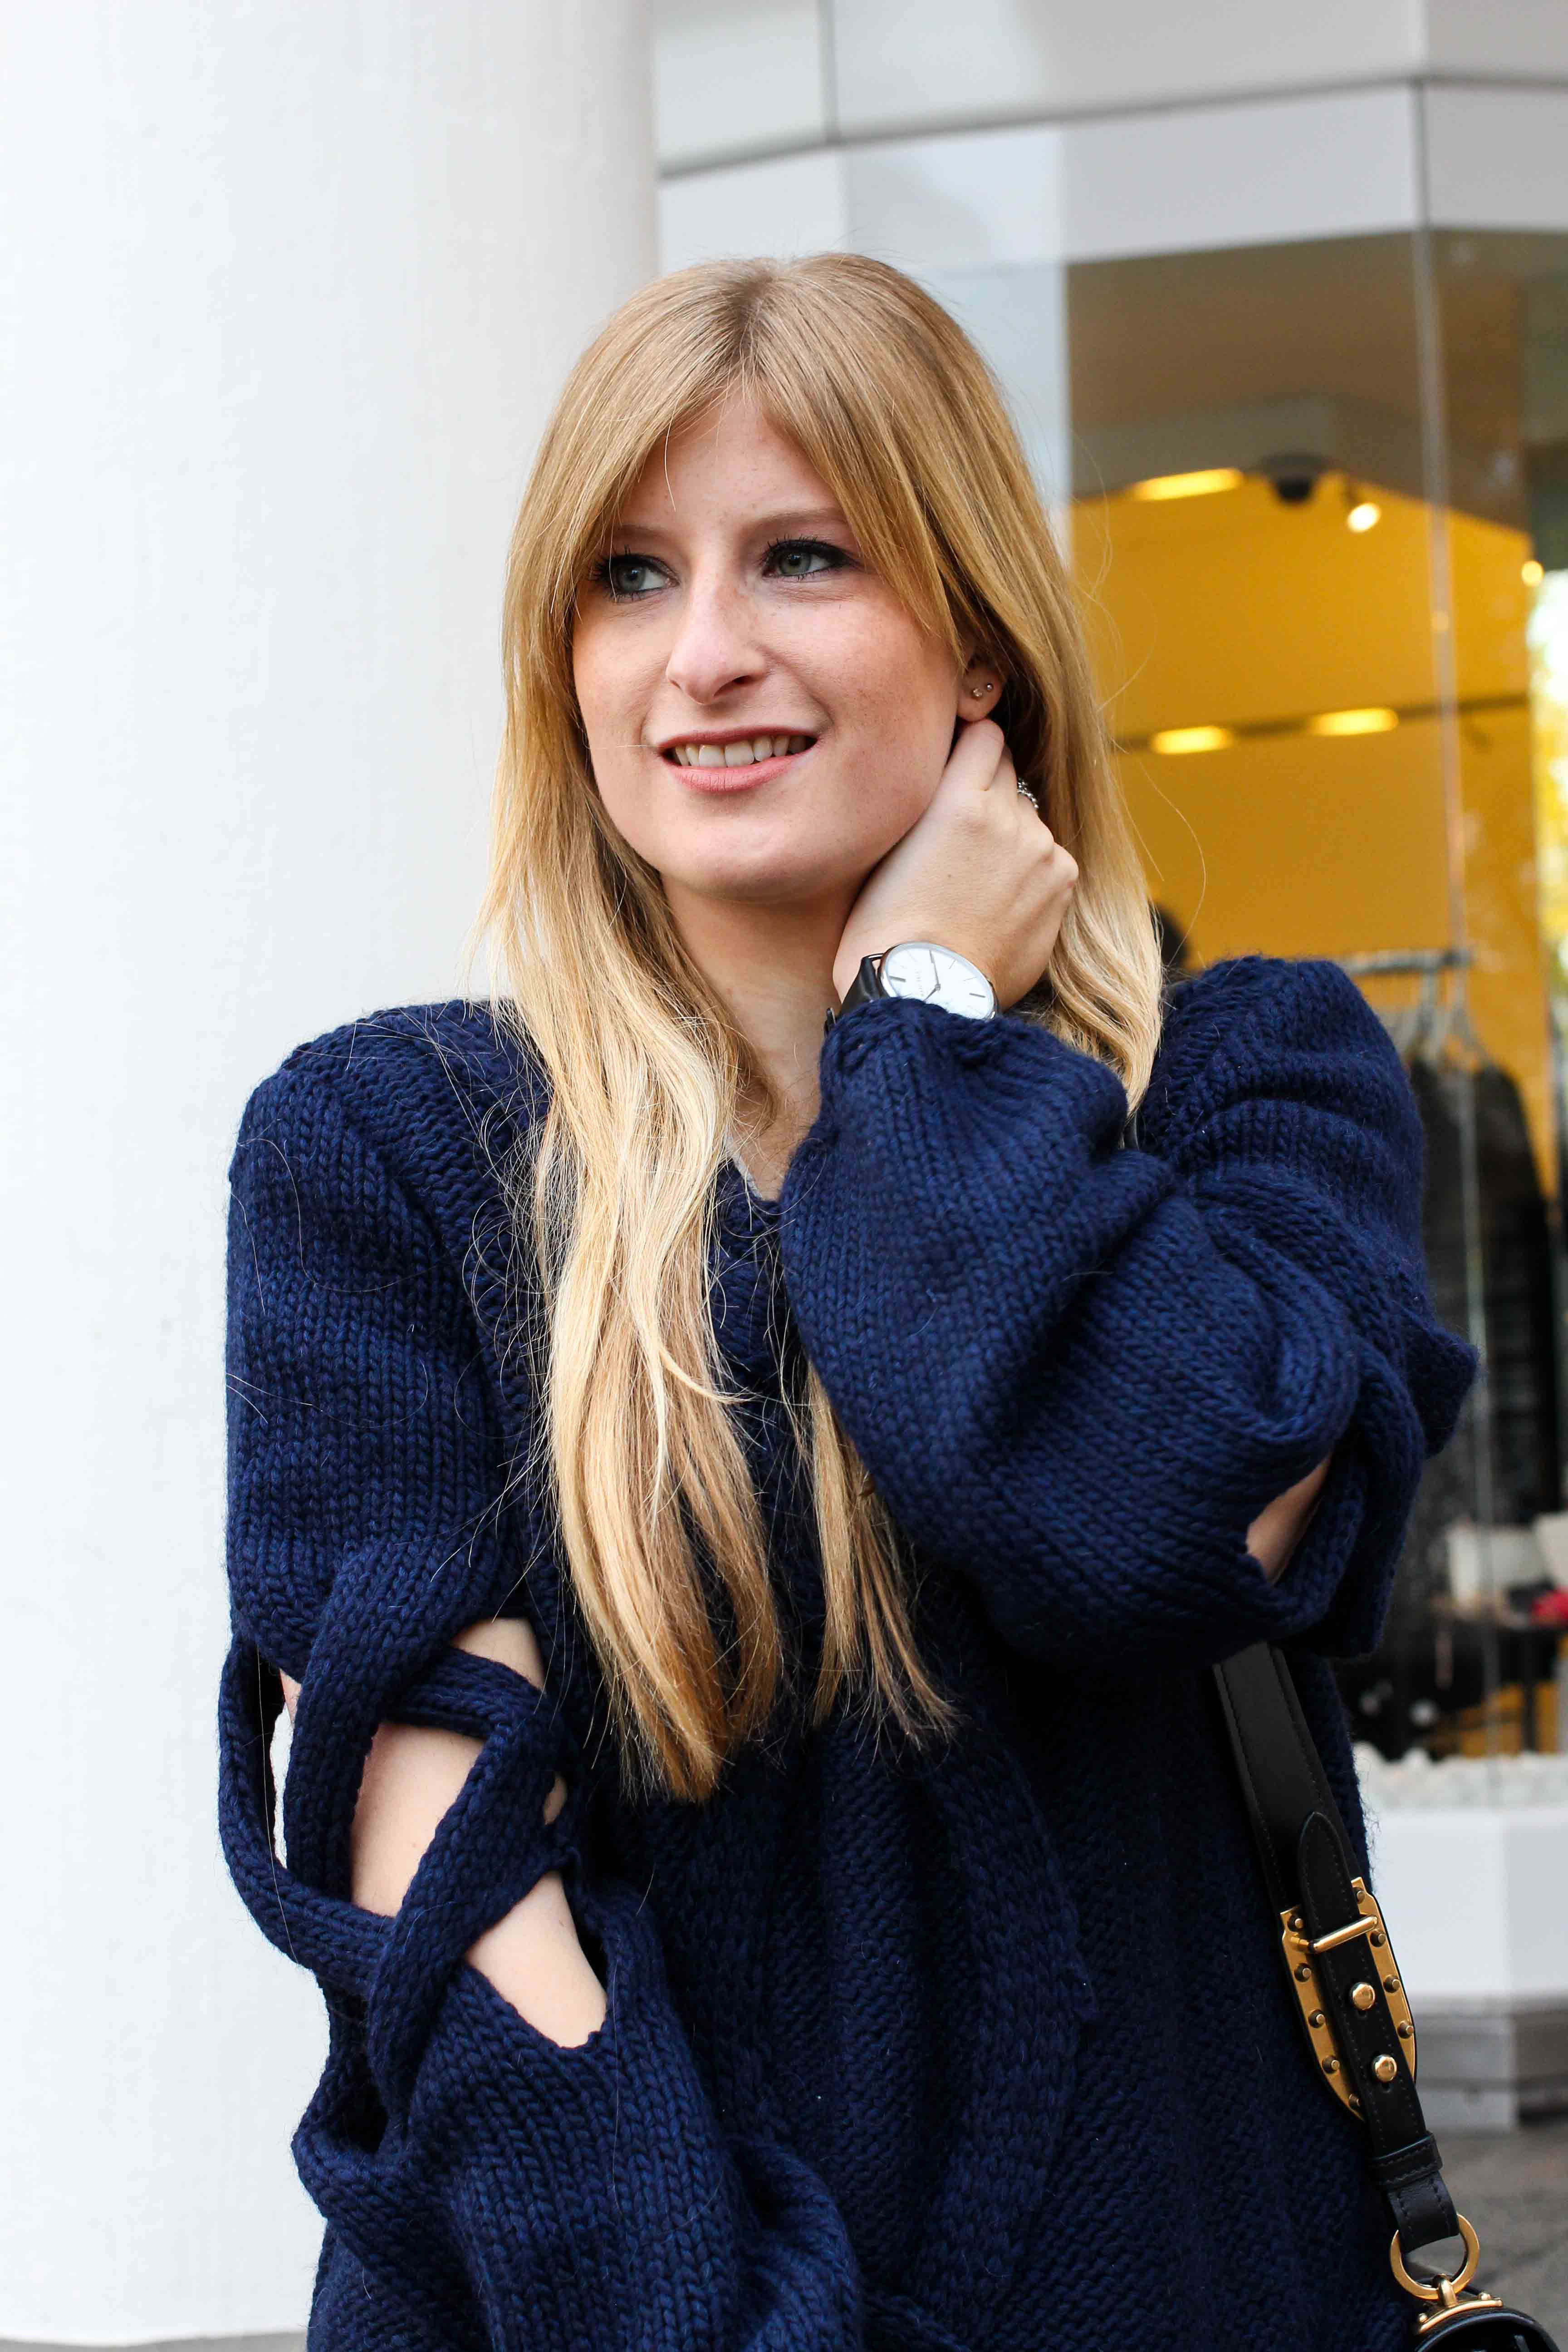 Streetstyle Wollpullover mit Cut-Outs Zopfmuster Modeblogger 8